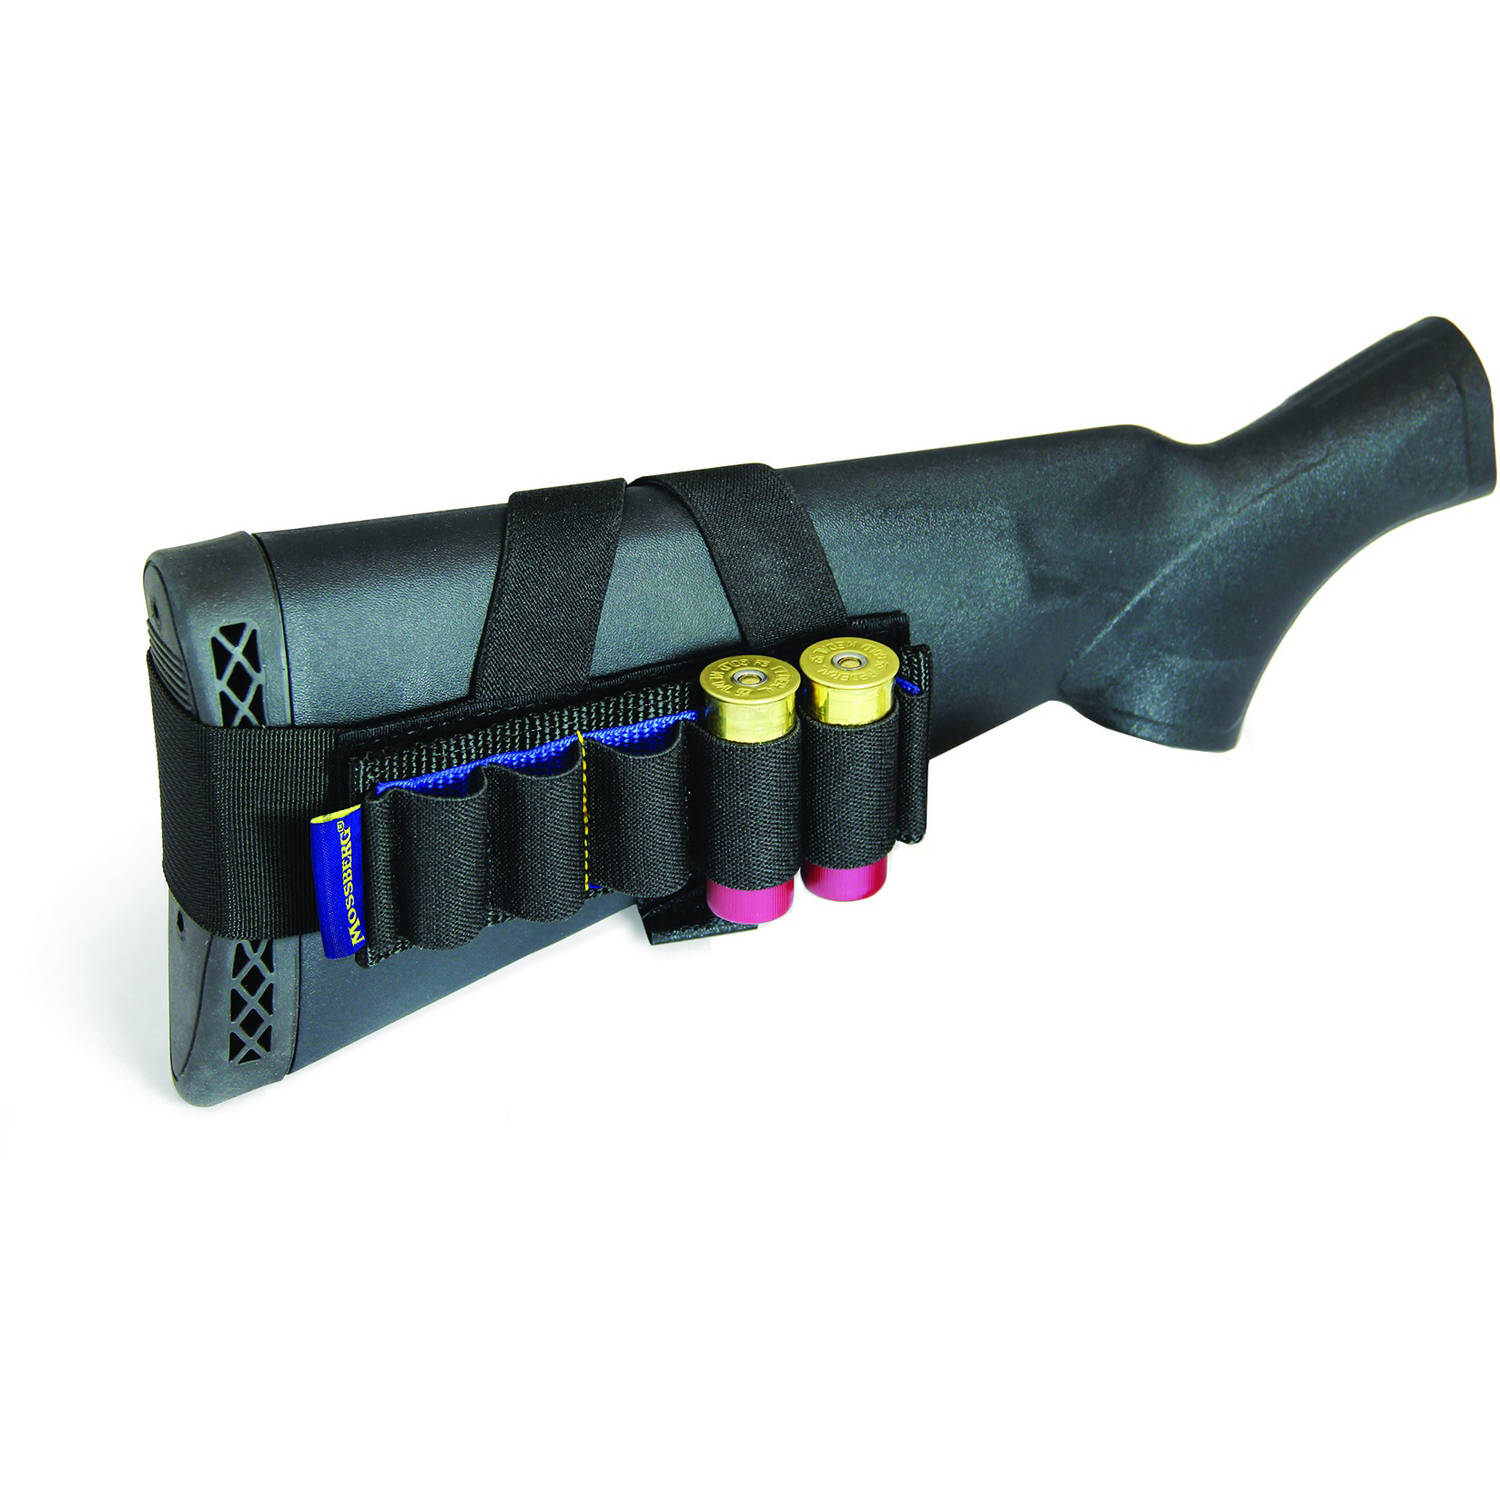 Mossberg Rear Stock Shell Carrier, 5 Round, Black